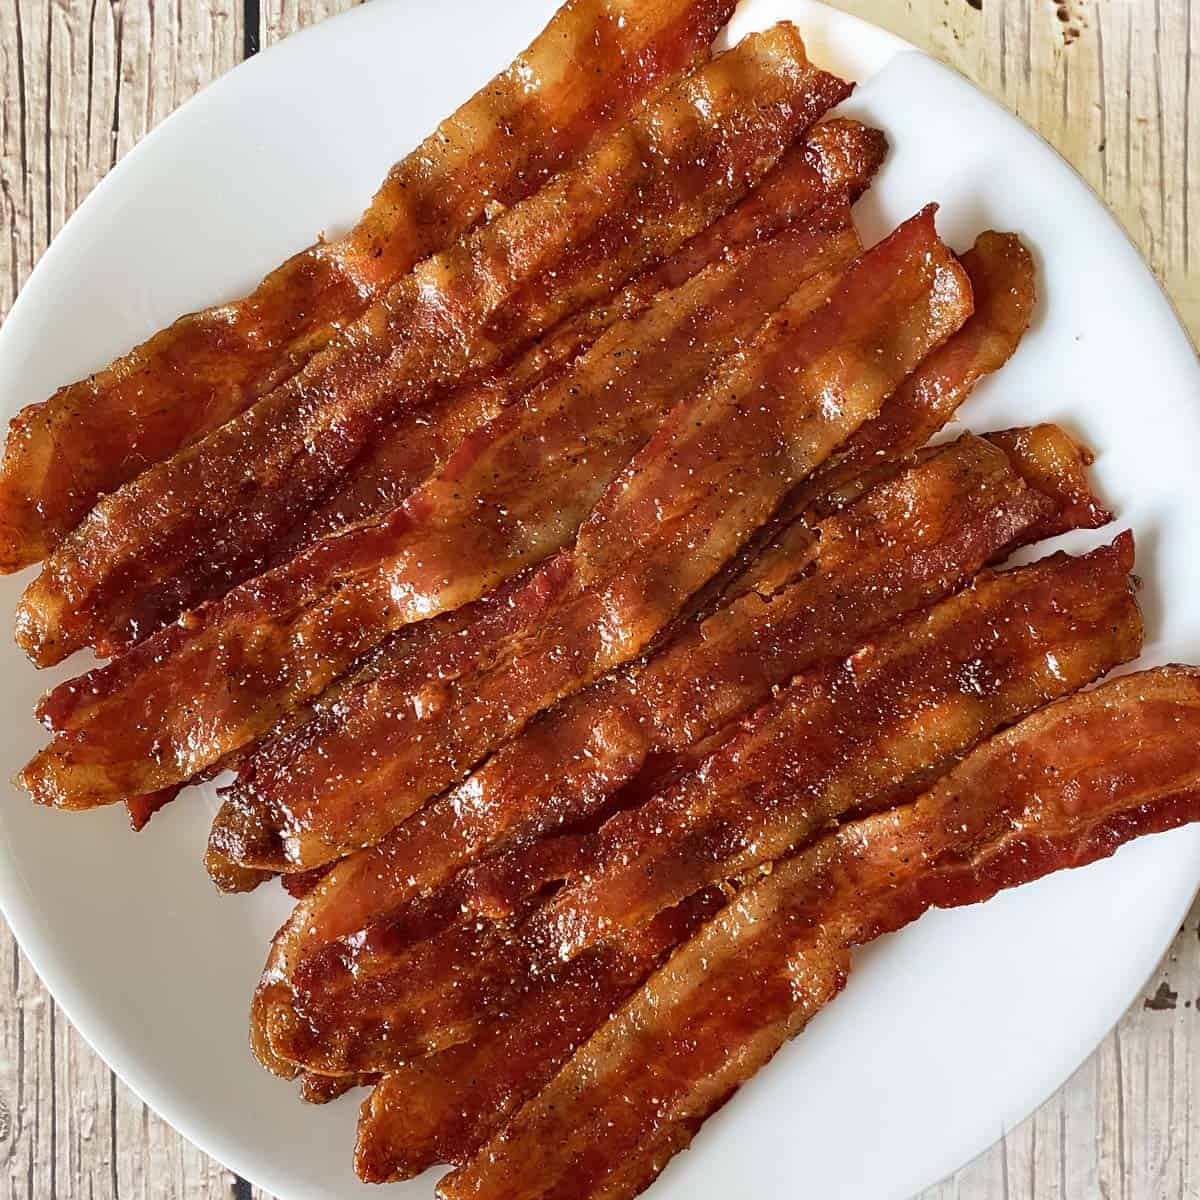 maple candied bacon on a white plate against a weathered wood background